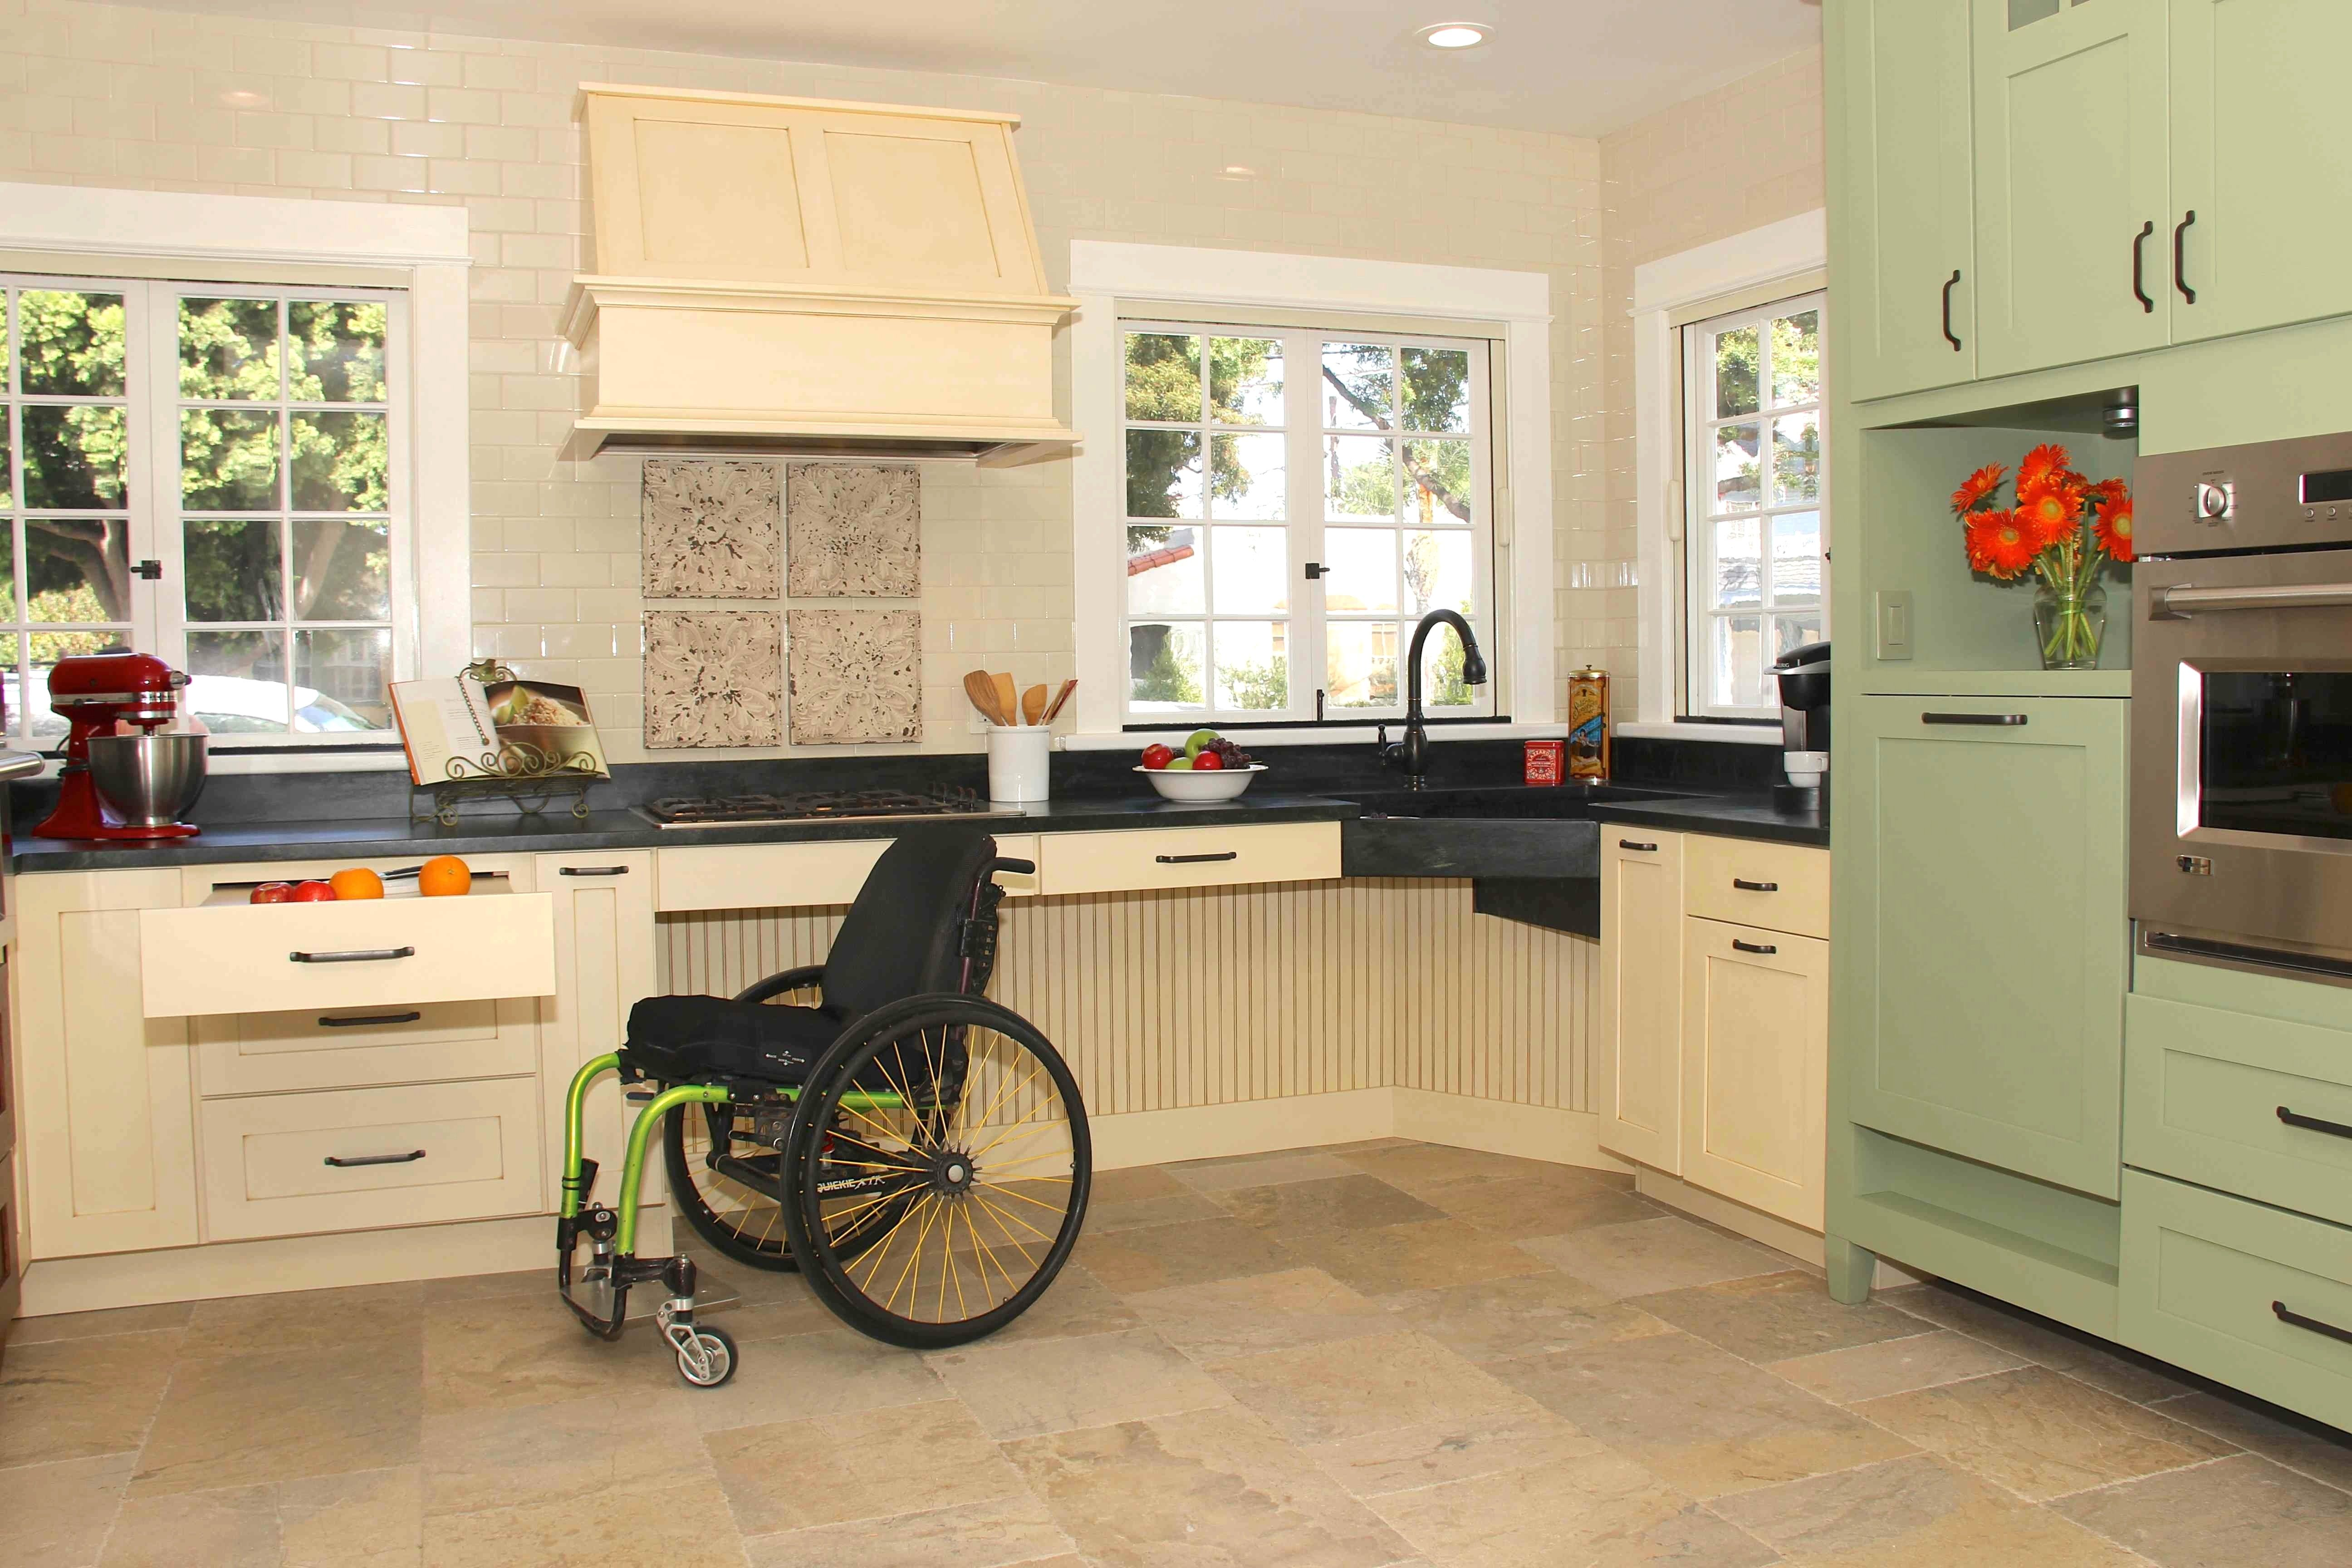 Designs For Handicapped Homes Google Search Handicap Access Captivating  Accessible Kitchen Design Decorating Design